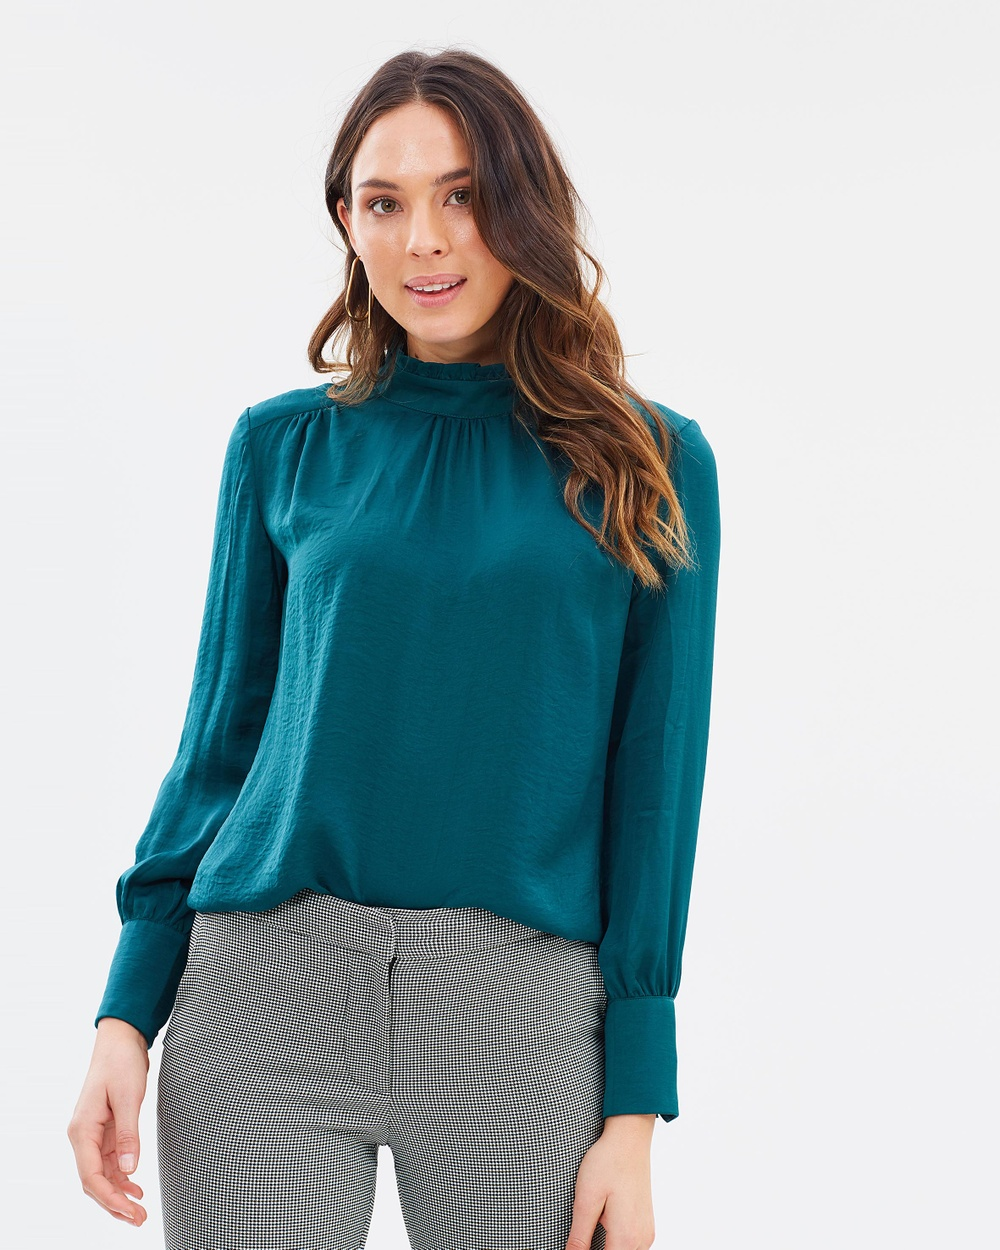 Forcast Lilia High Neck Blouse Tops Emerald Lilia High Neck Blouse